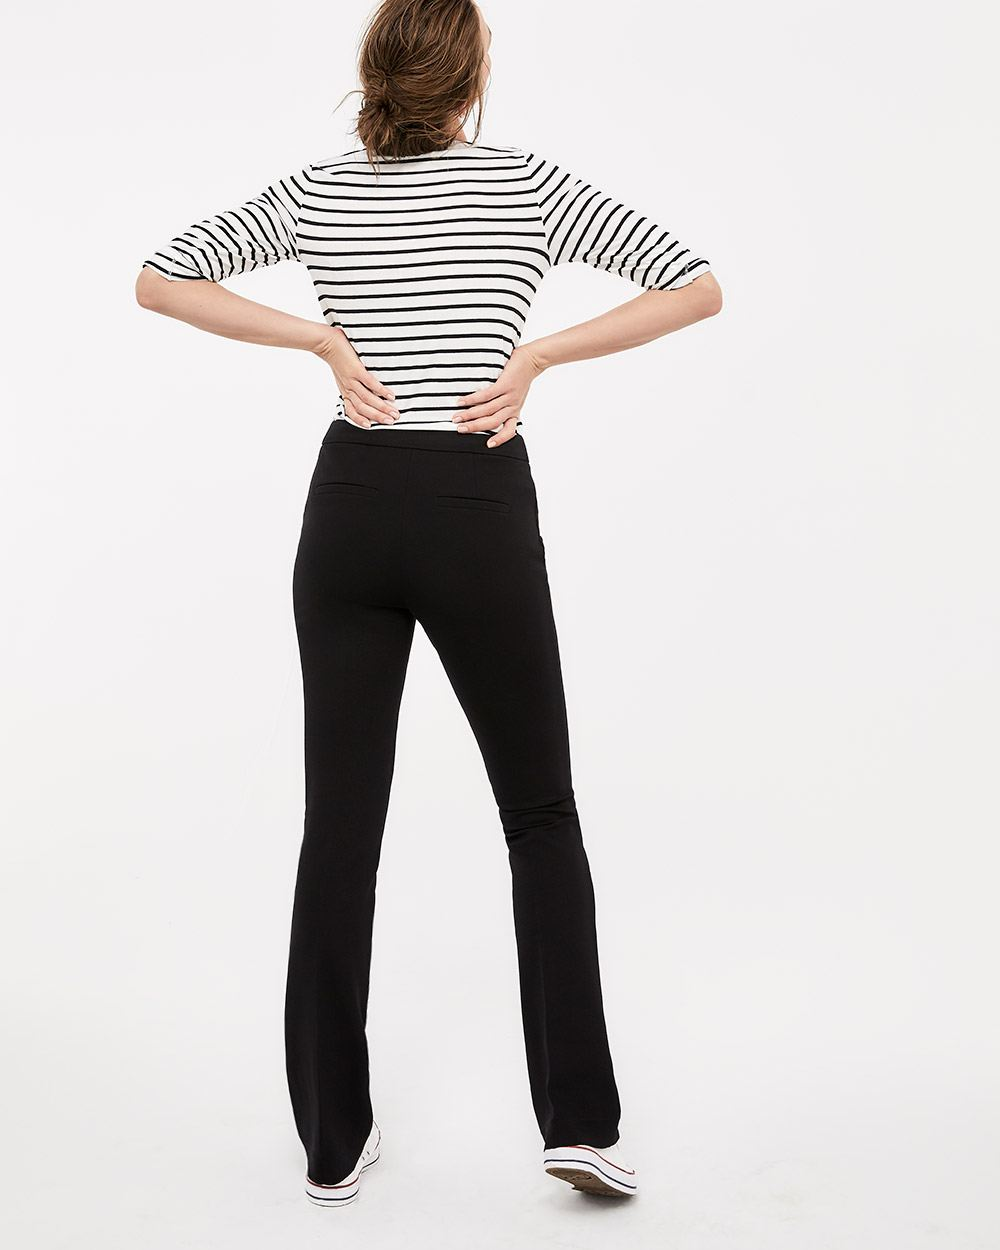 The Modern Stretch Bootcut Pants